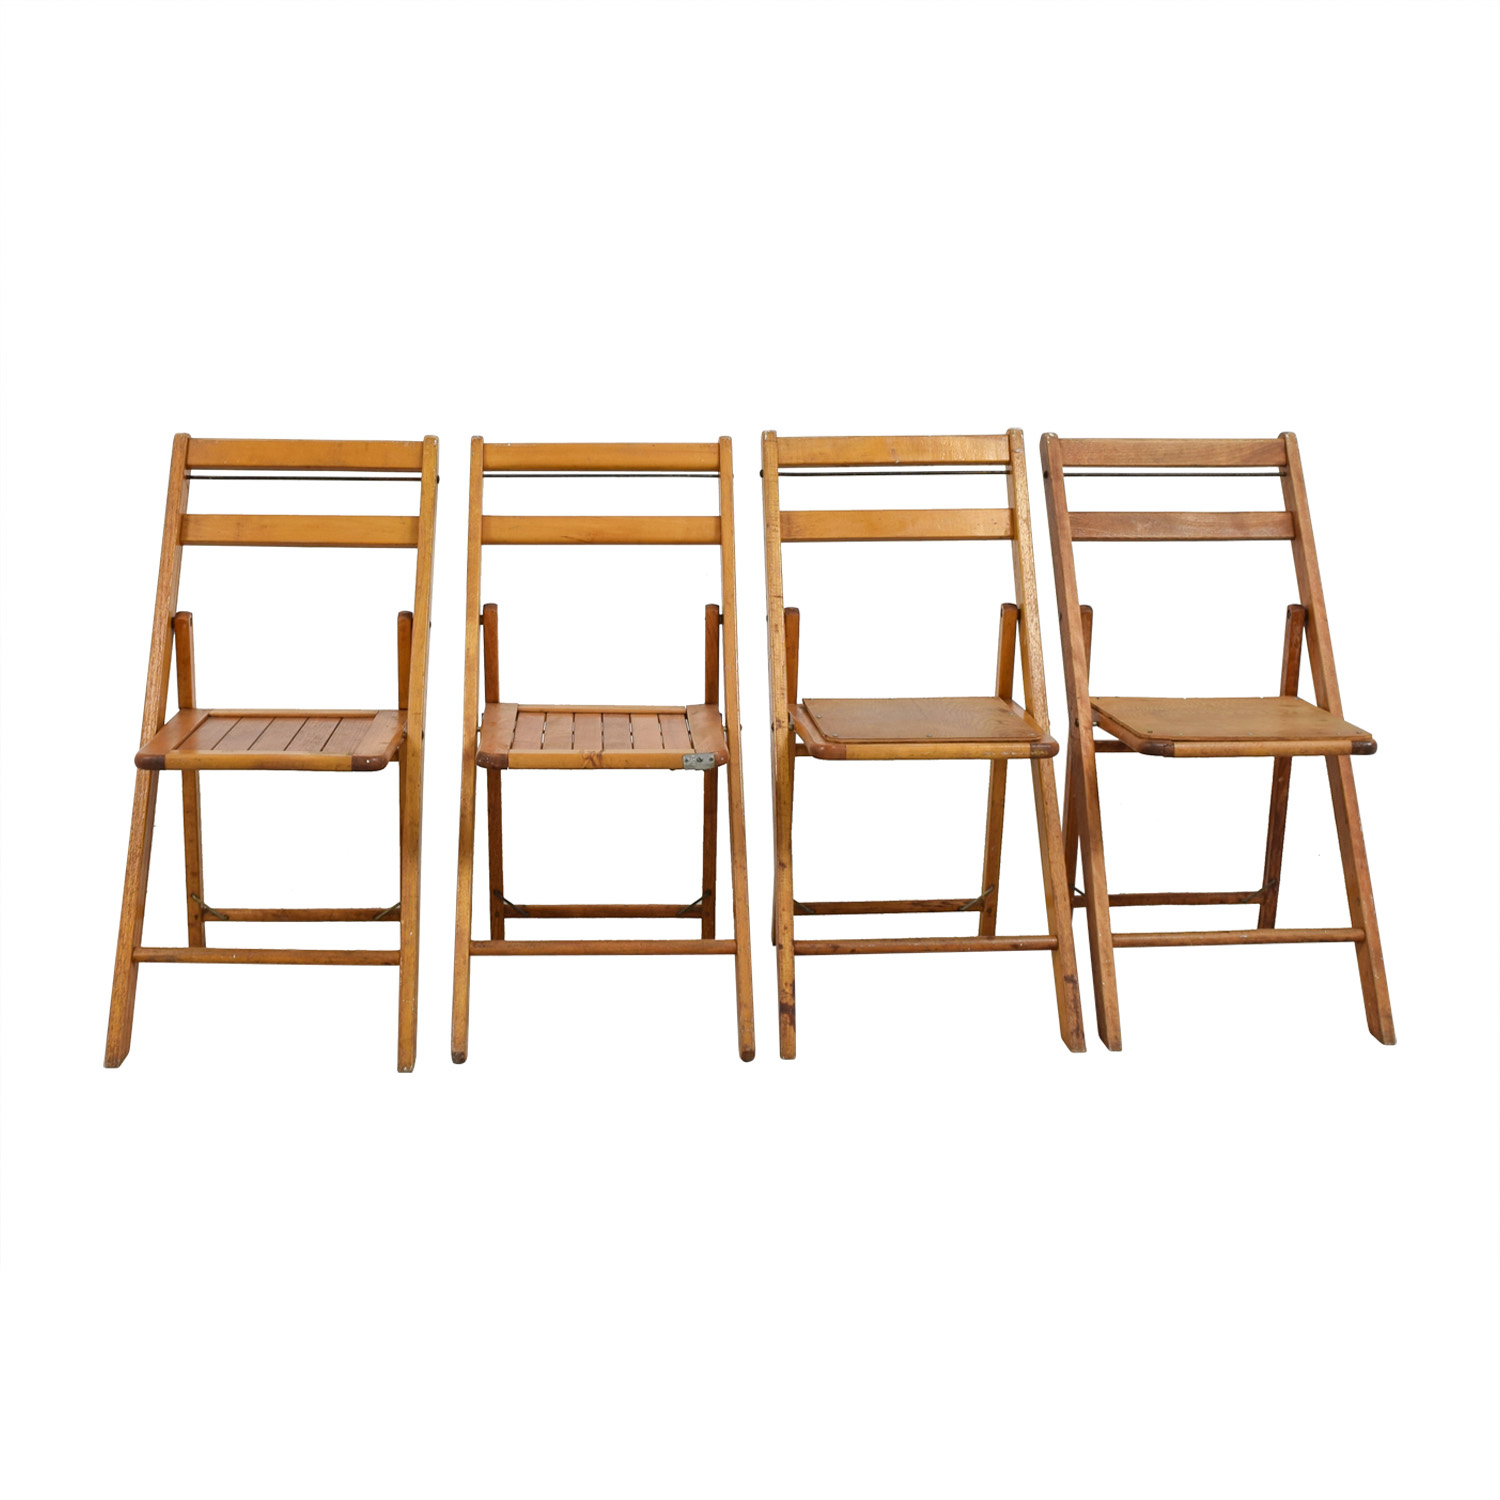 buy Rustic Wood Folding Chairs